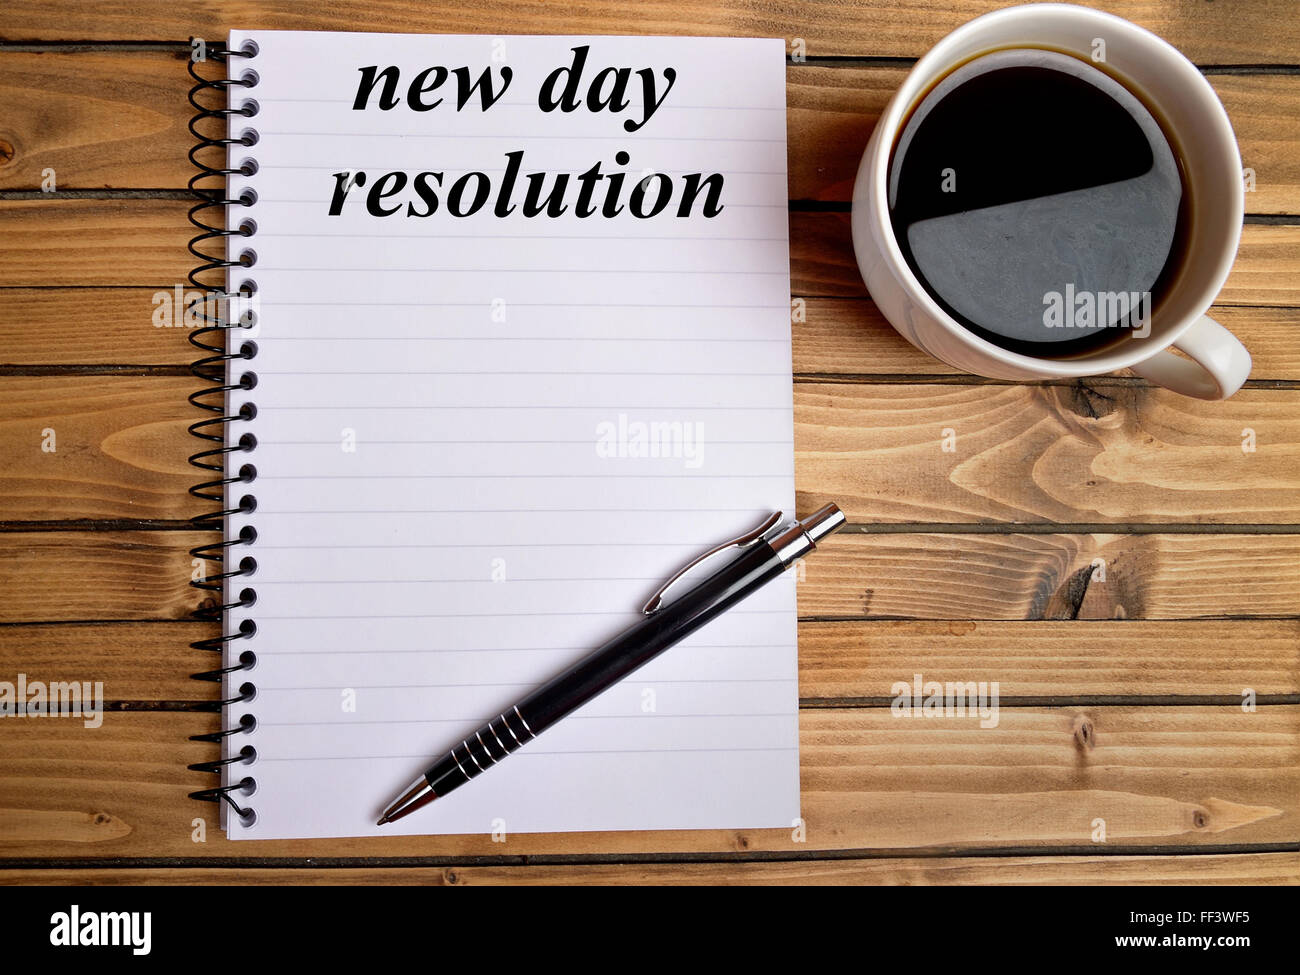 New day resolution word on notepad - Stock Image